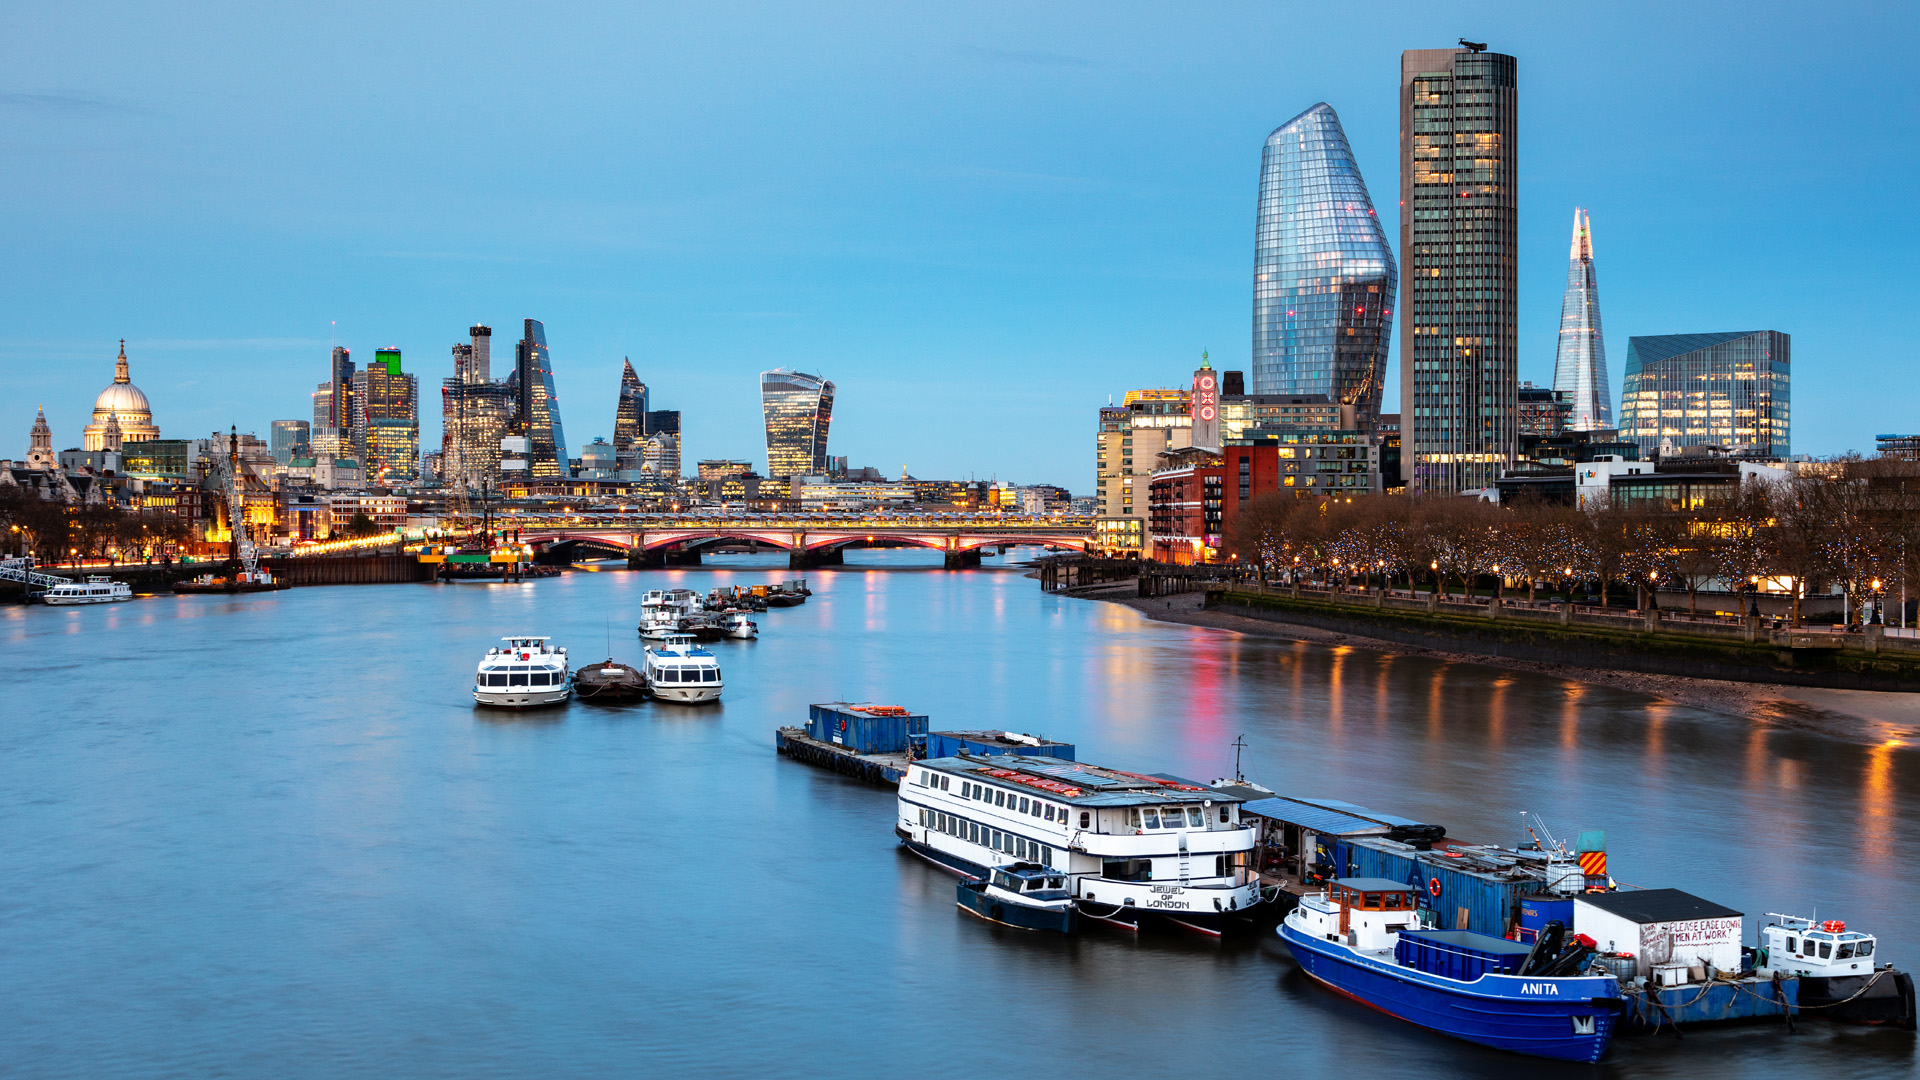 Boats on the river Thames with the tall skyscrapers of the city in the background along with Blackfriars Bridge and St Paul's Cathedral in the distance